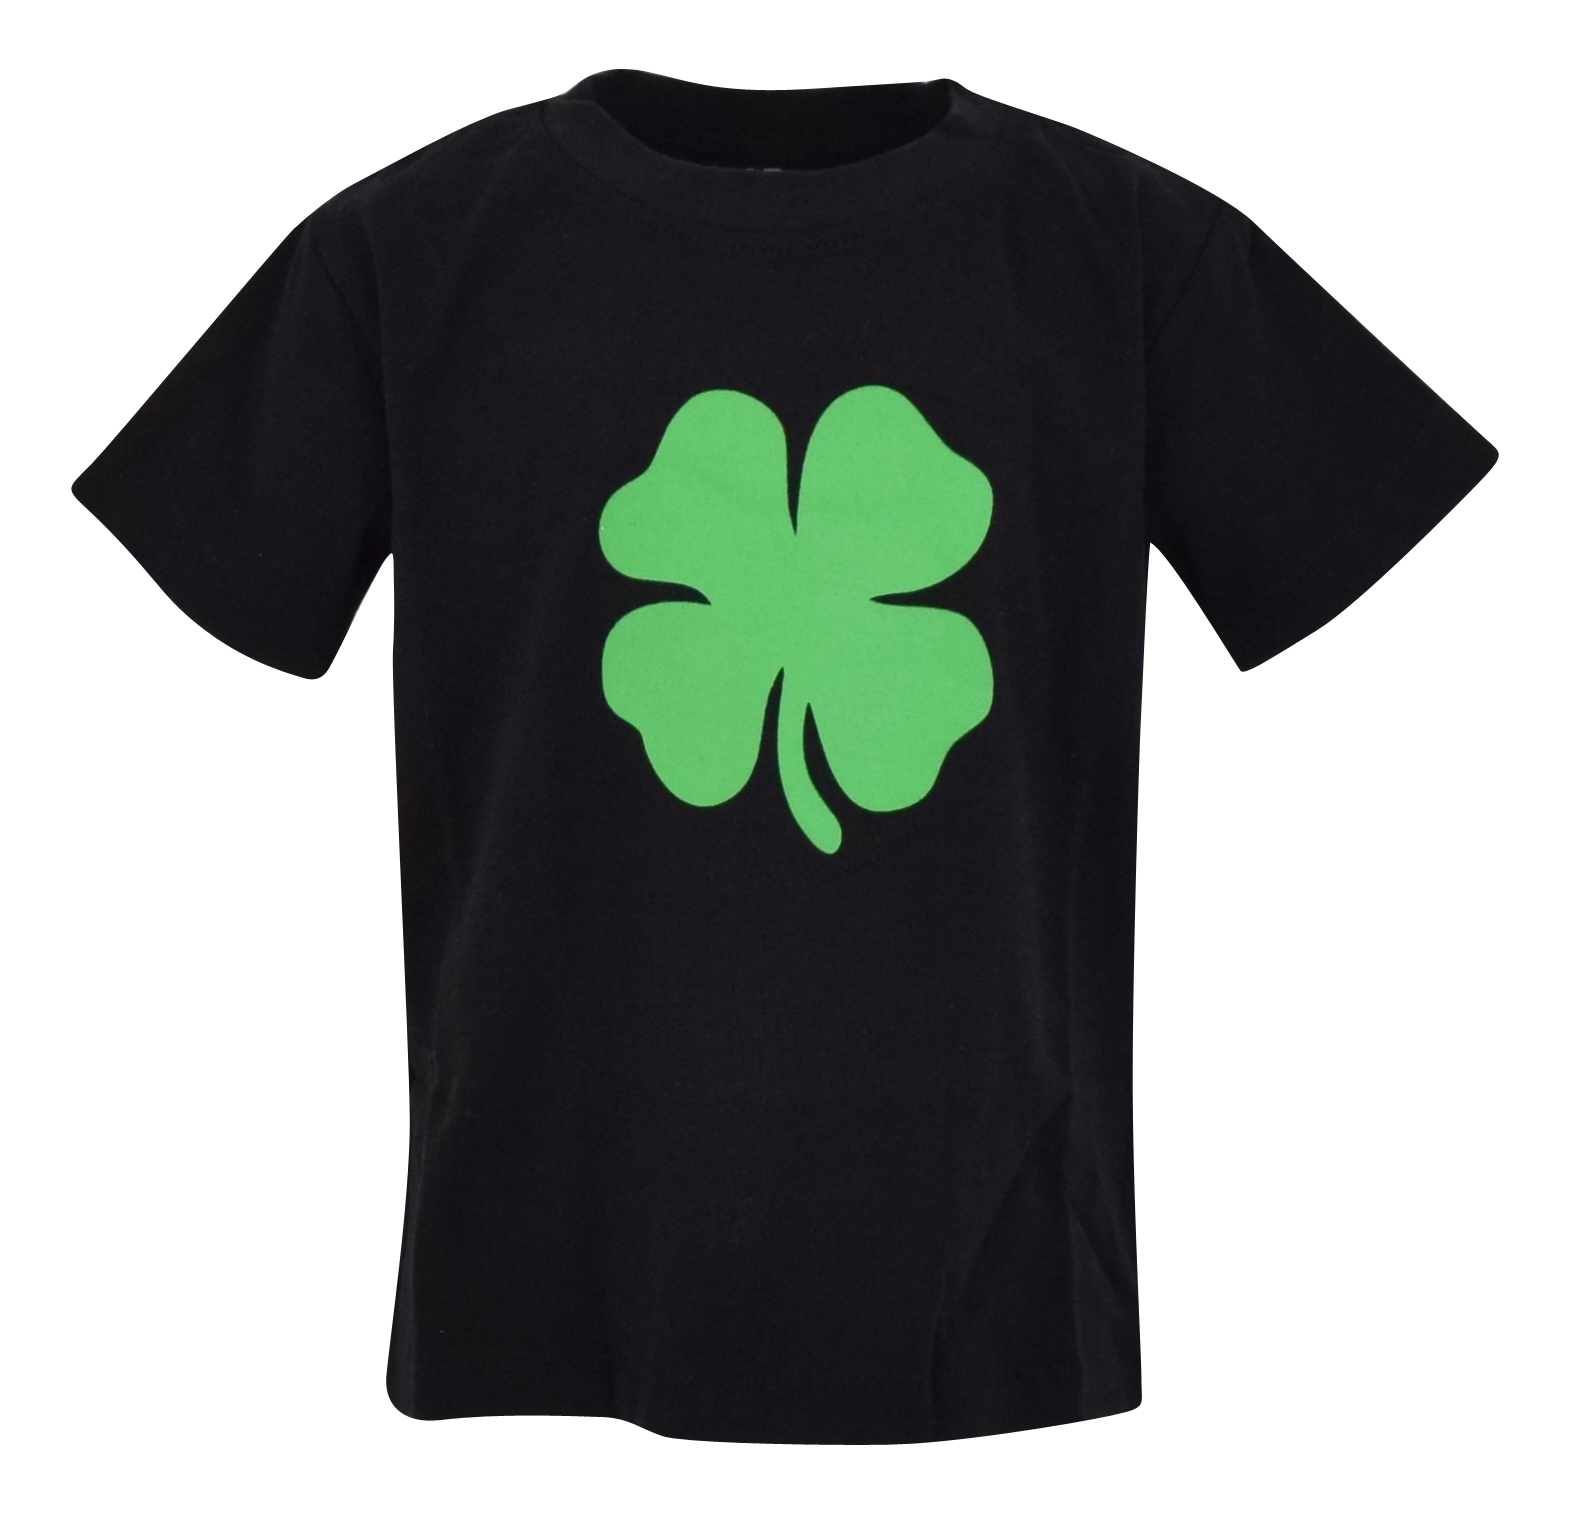 Boys-2-Piece-ST-Patricks-Day-Clover-Outfit-2t-3t-4t-5-6-7-8-Toddler-Kids-Clothes thumbnail 35